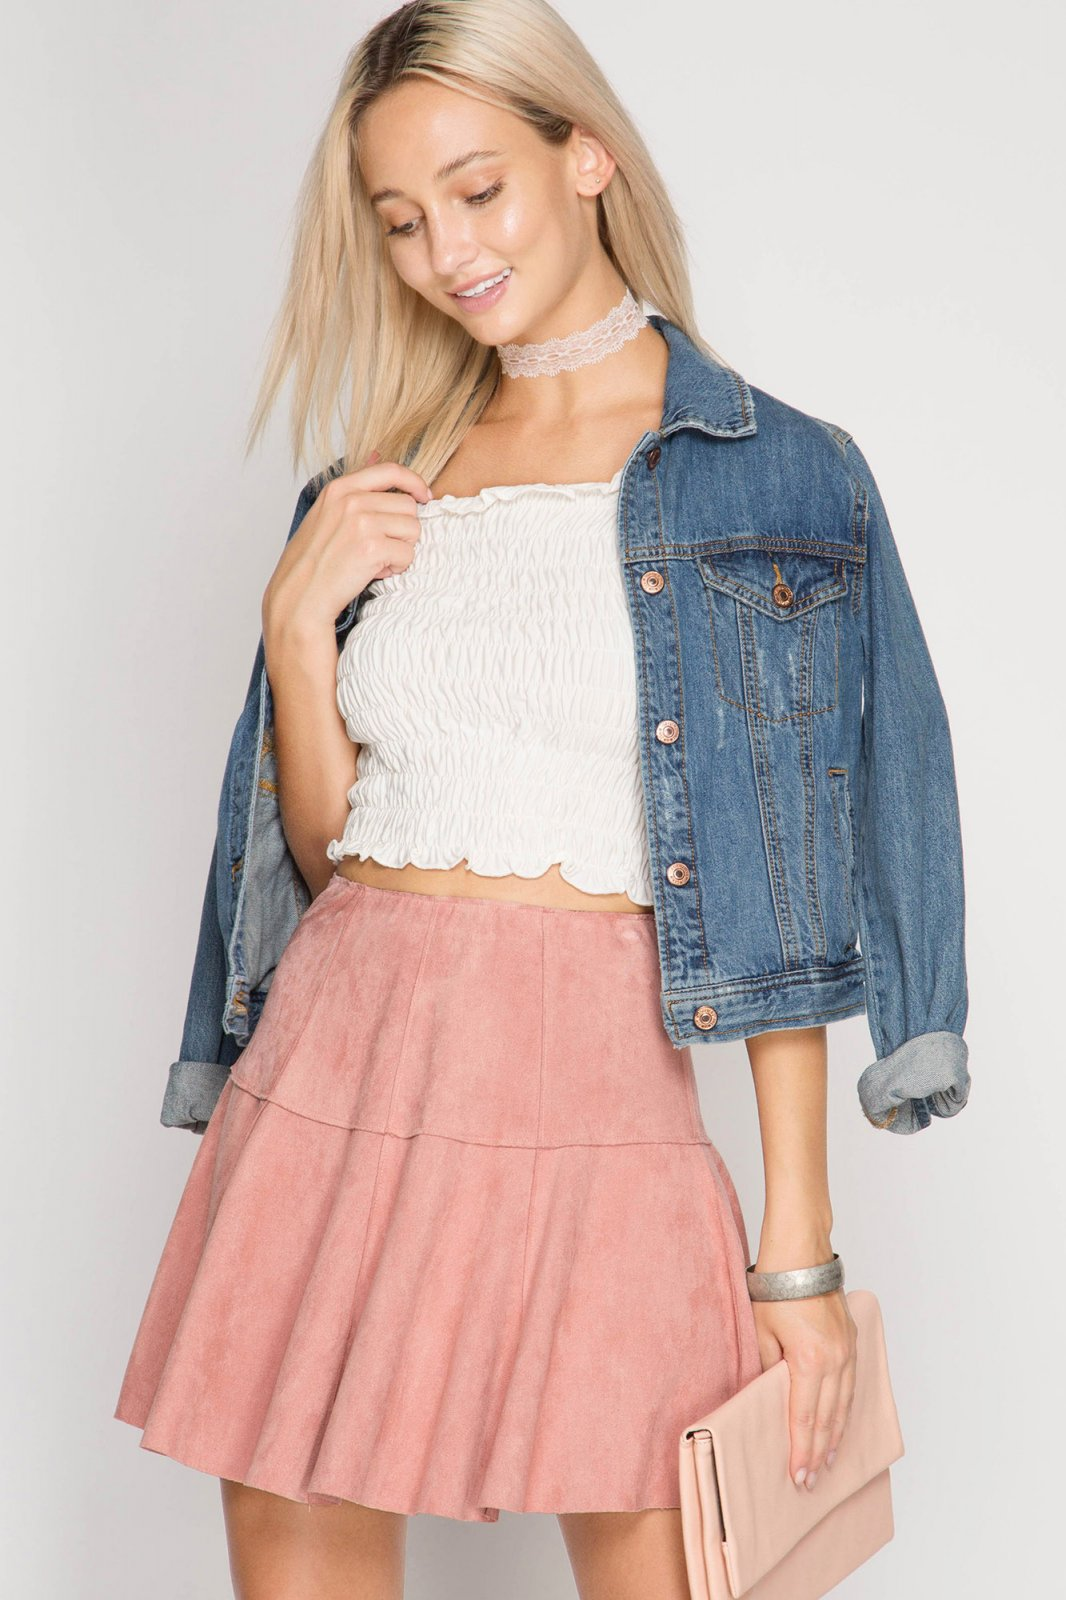 FAUX LEATHER Flare Mini Skirt ROSE * JR / Ms / Adult PT